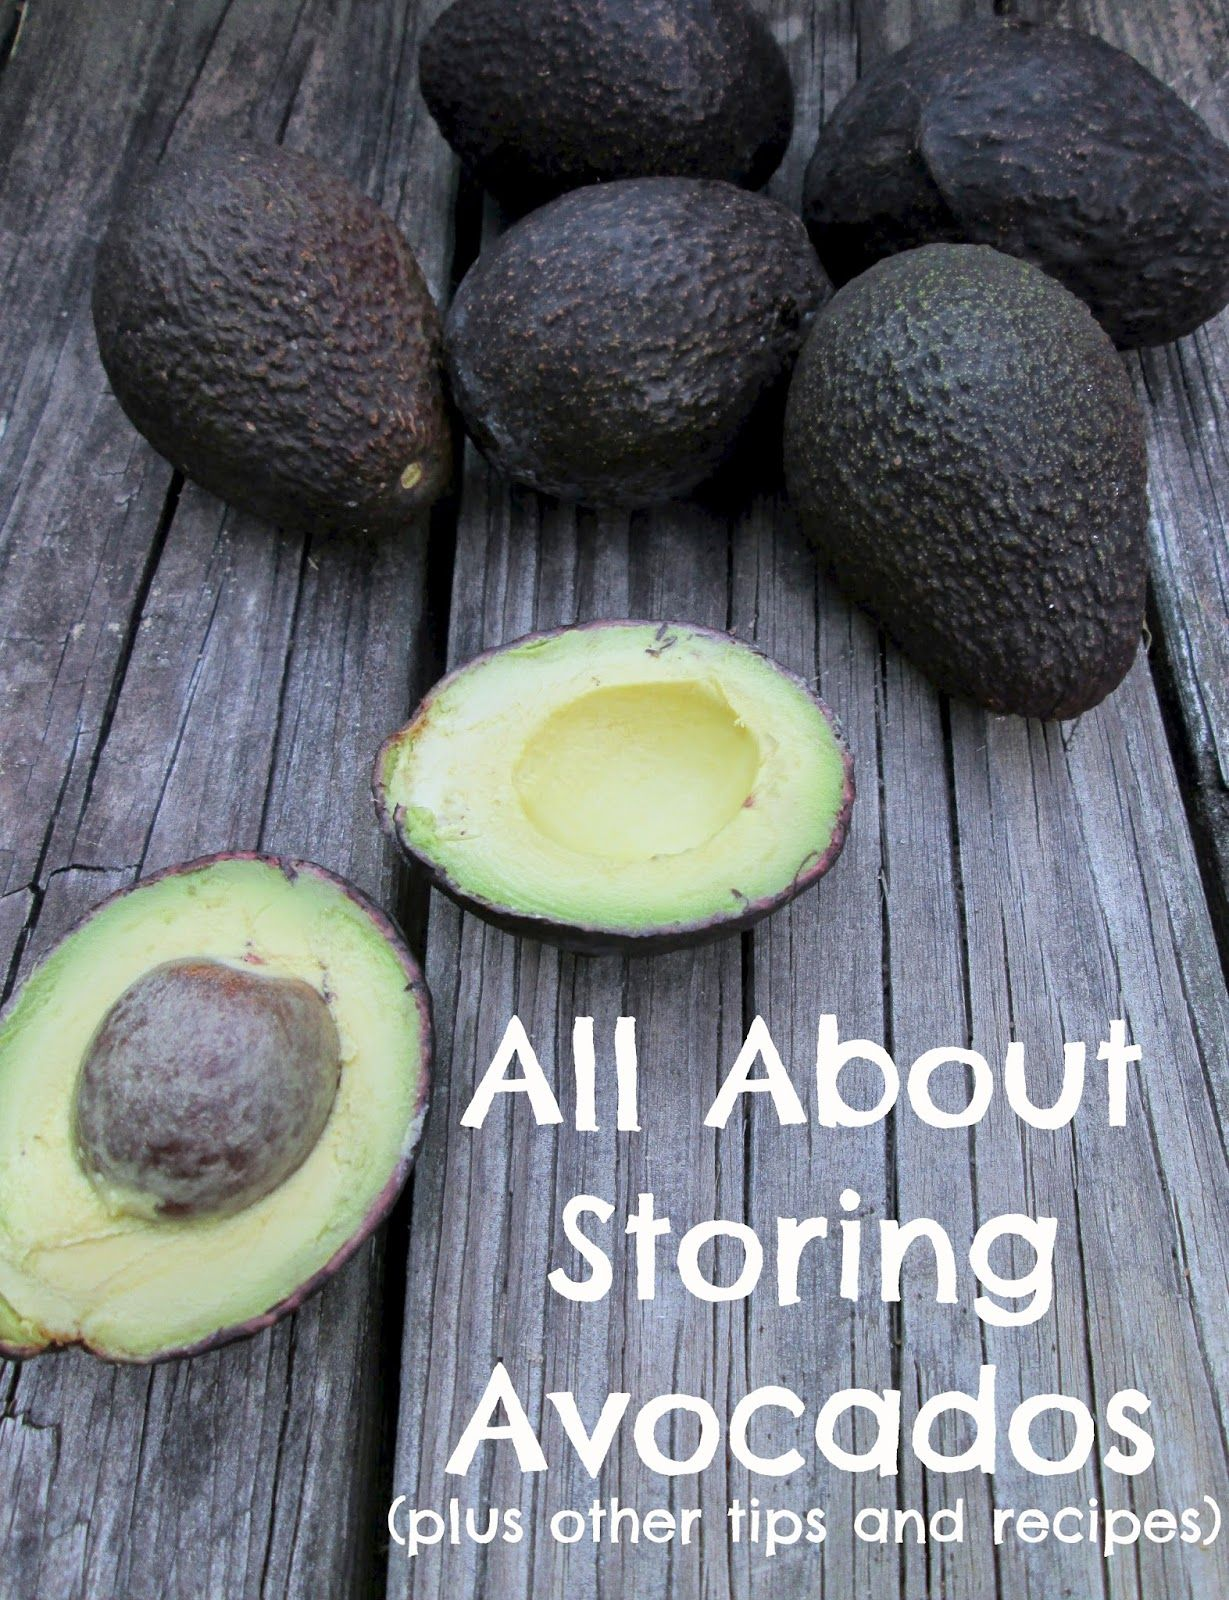 All About Storing Avocados (plus Other Tips And Recipes